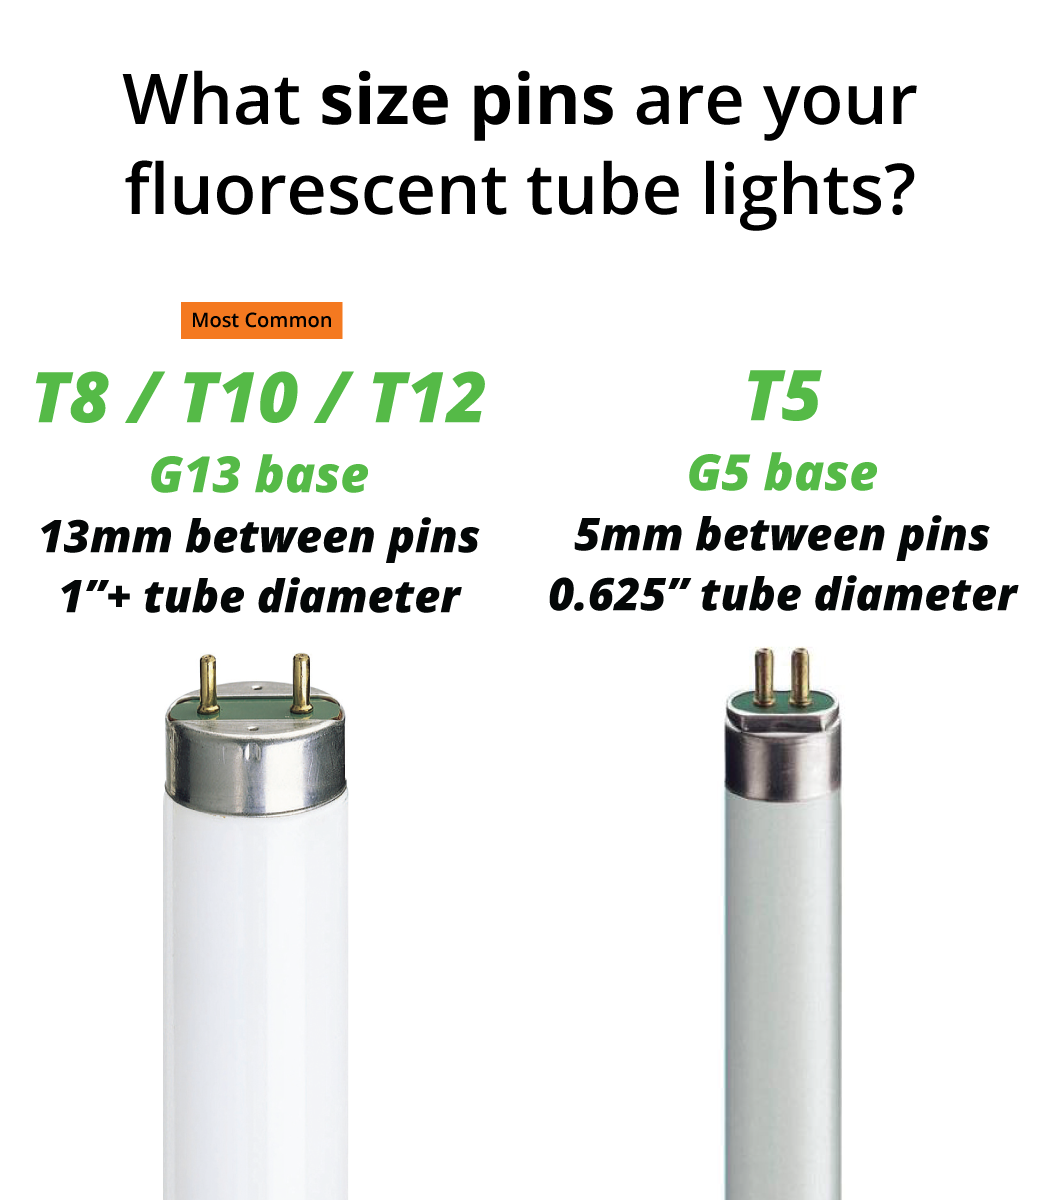 To determine your LED tube light pin size, measure the diameter of the fluorescent tube, or remove the tube from the fixture and measure the distance between the pins.